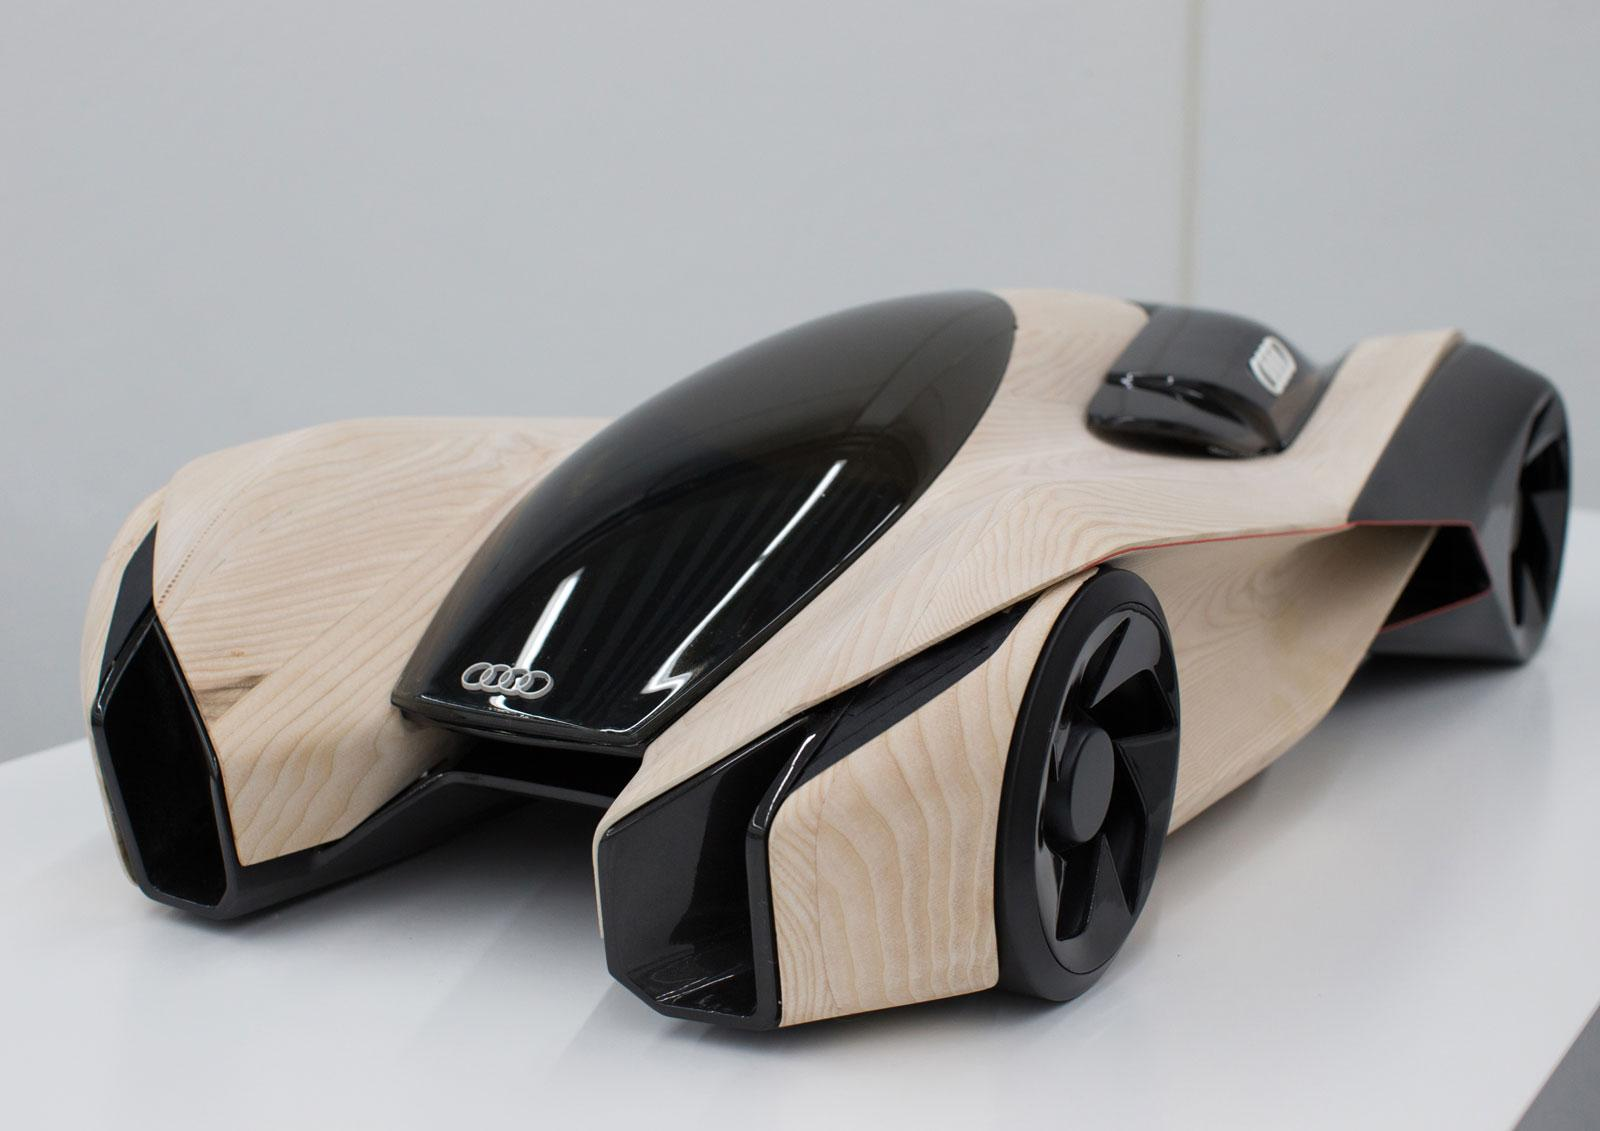 Audi Wood Aerodynamics Concept by Pavol Kirnag - Scale model - Car Body Design